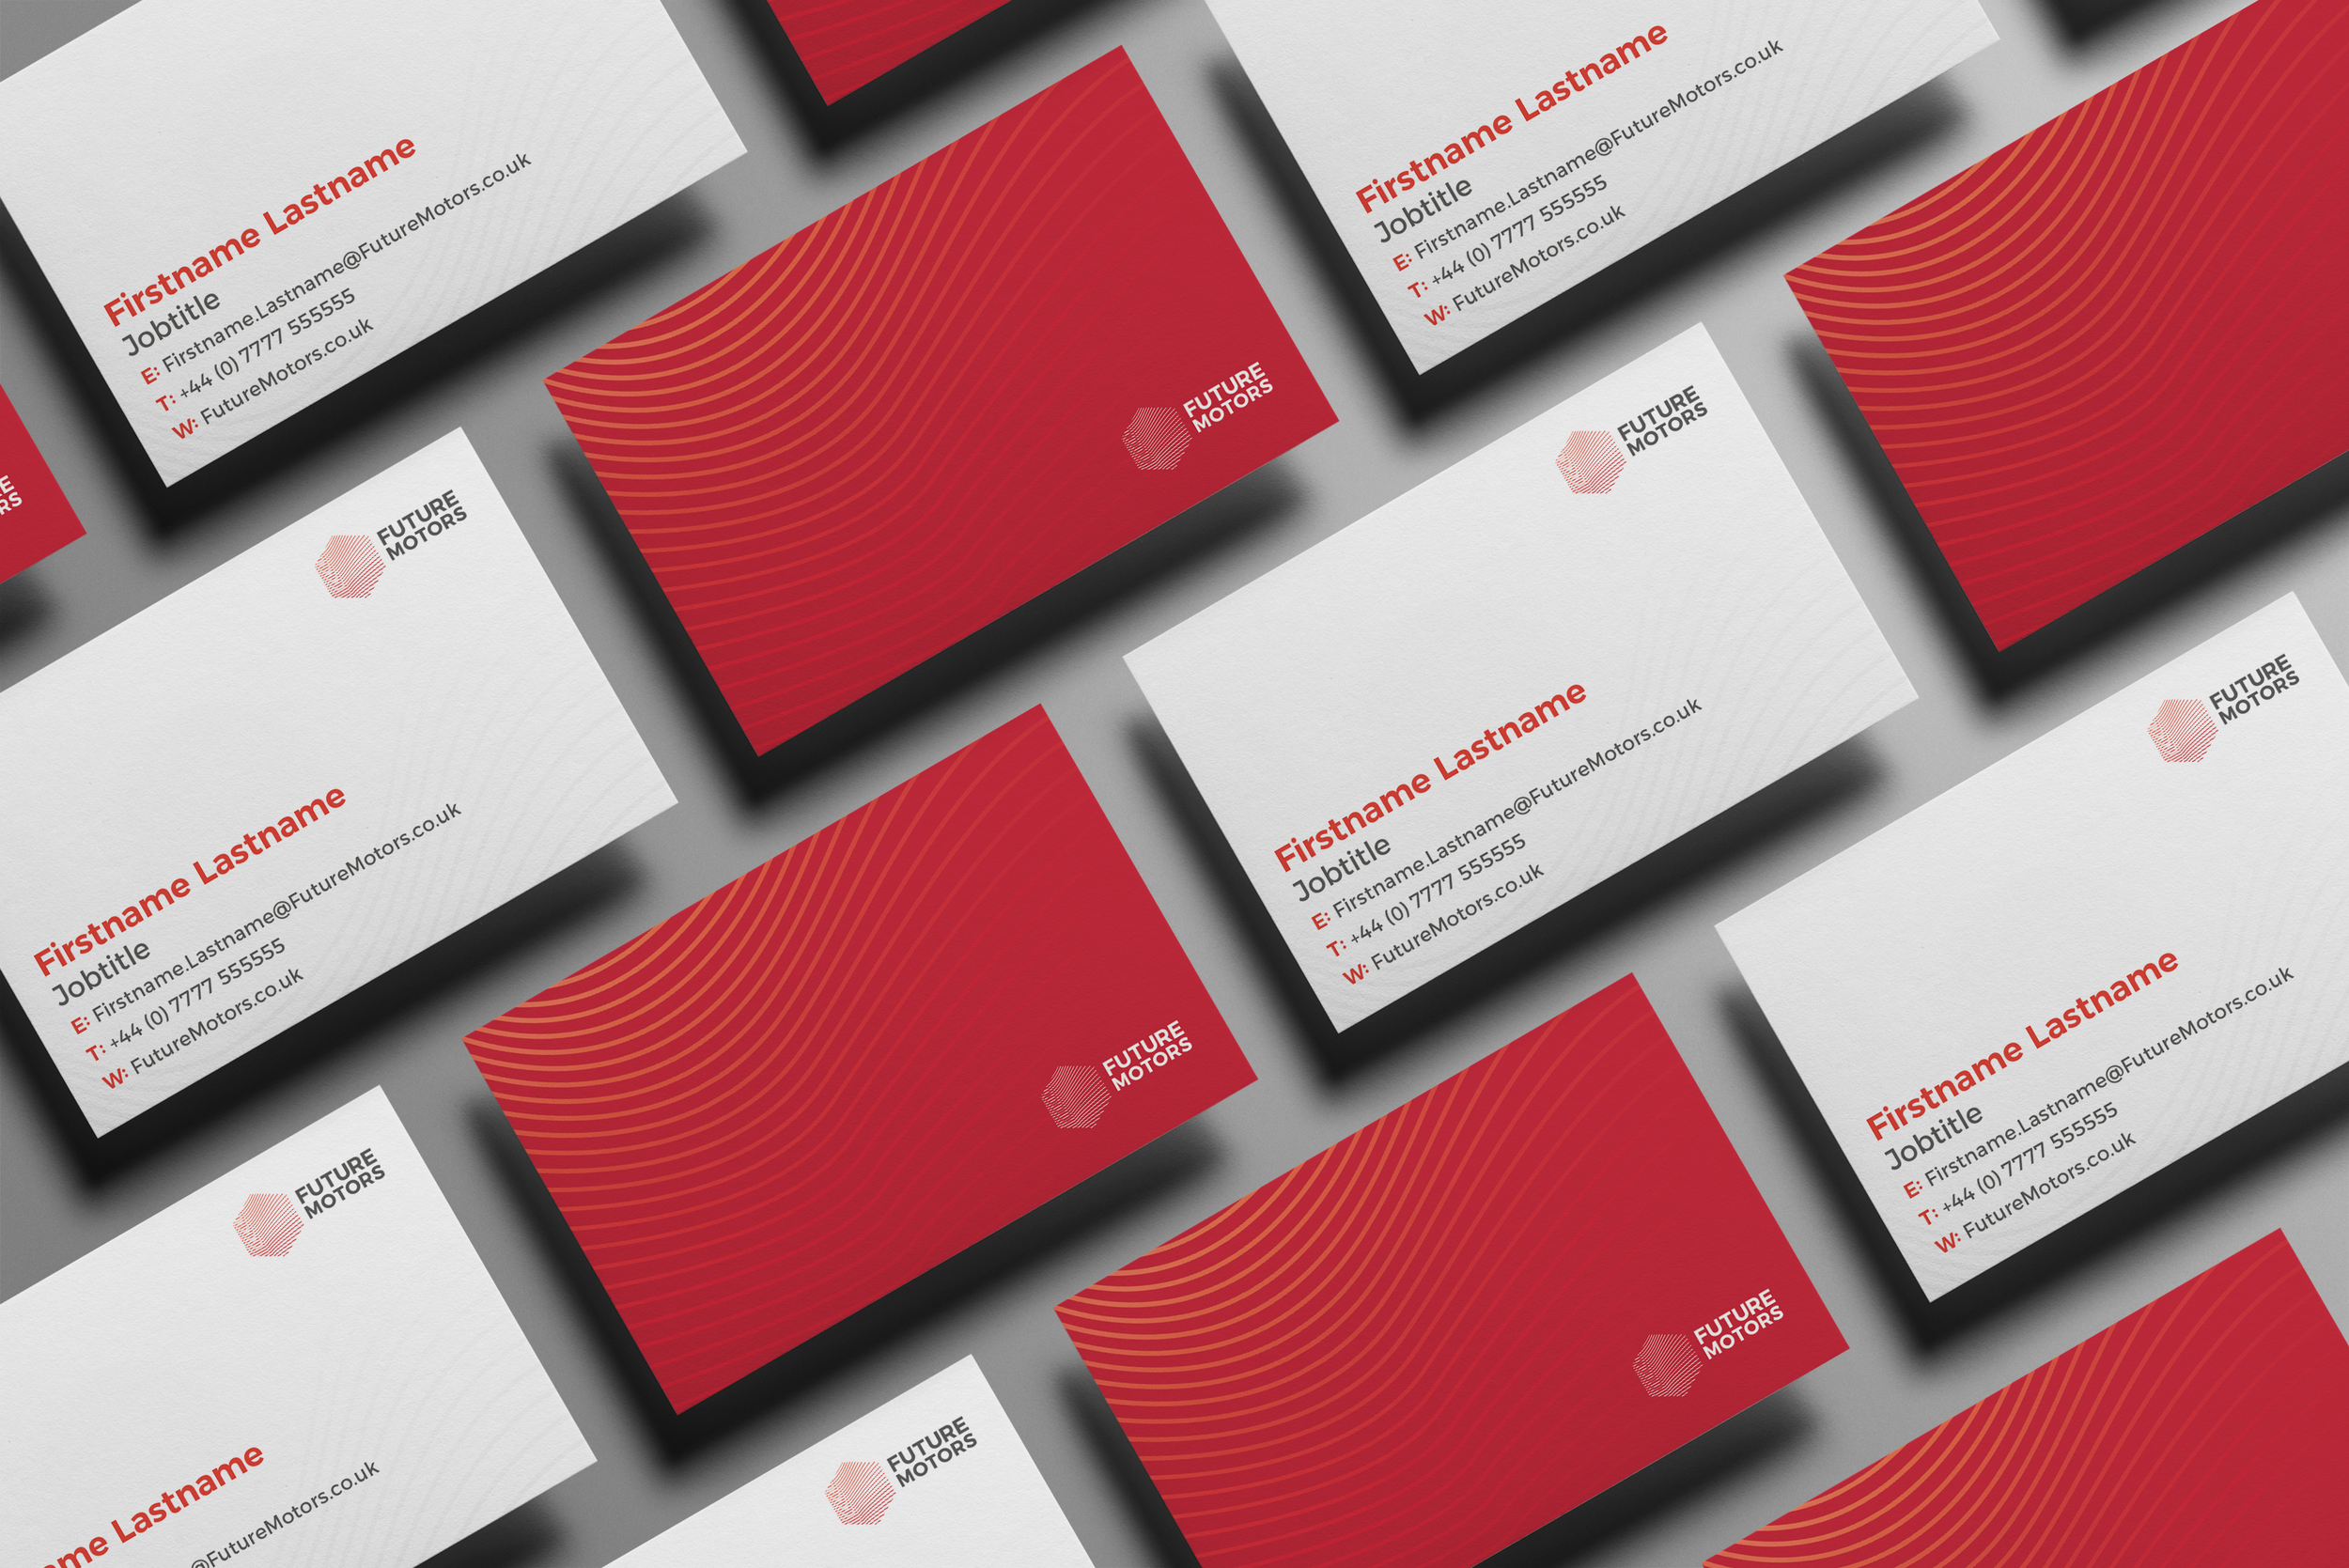 06-stationery-corporate-mockup-inter-size.png